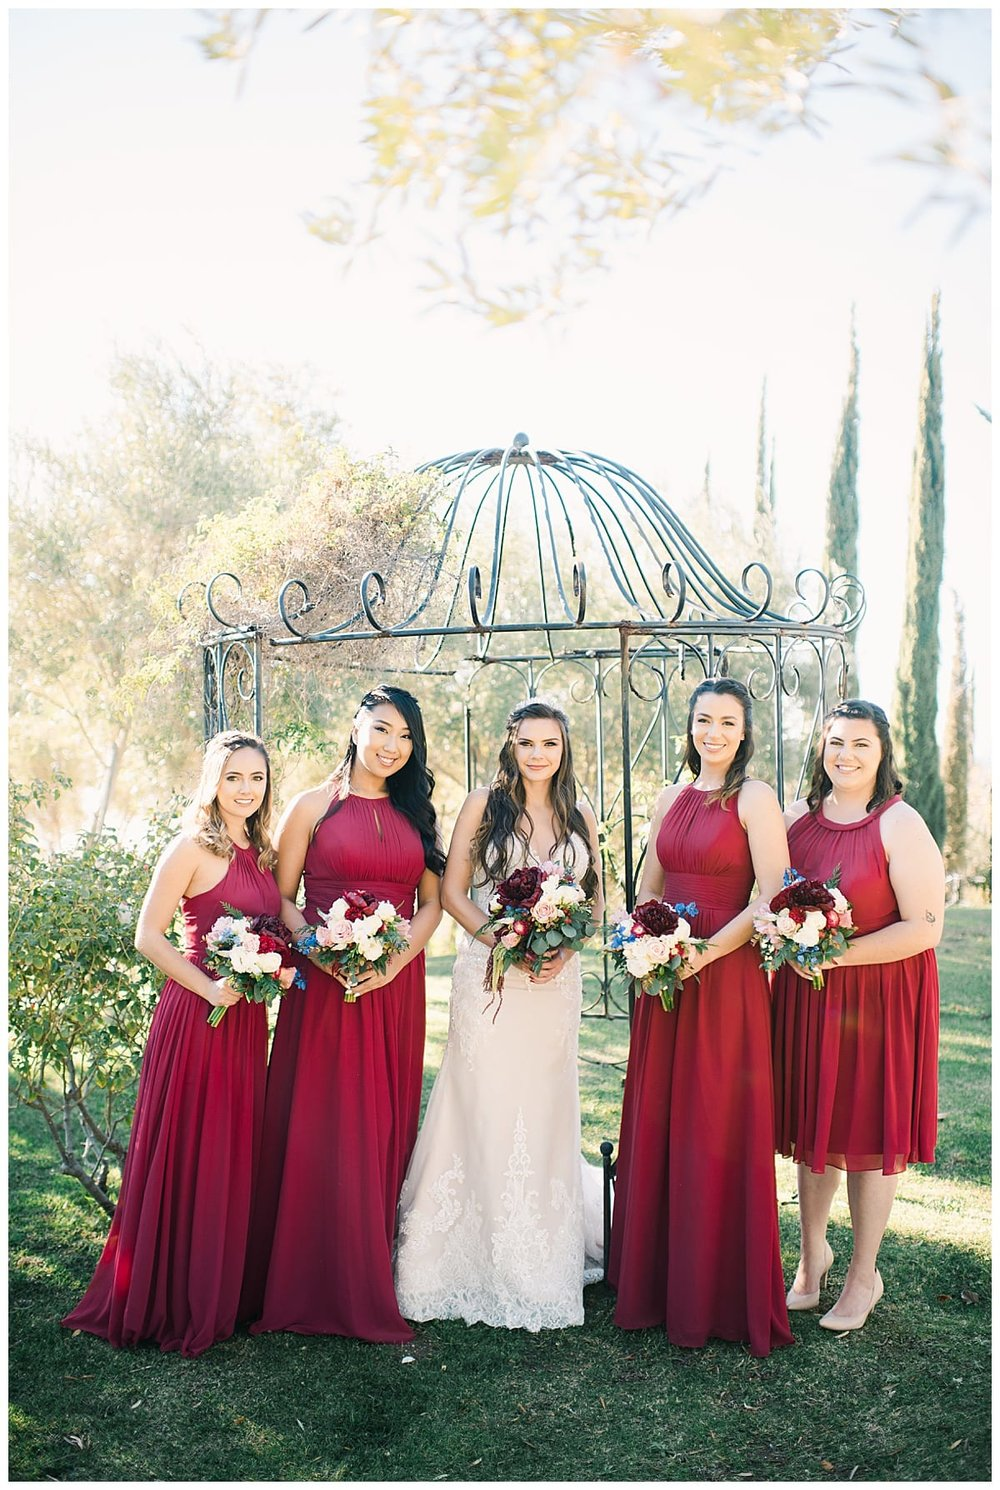 Mount-Polamar-Temecula-Wedding-Carissa-Woo-Photography_0013.jpg